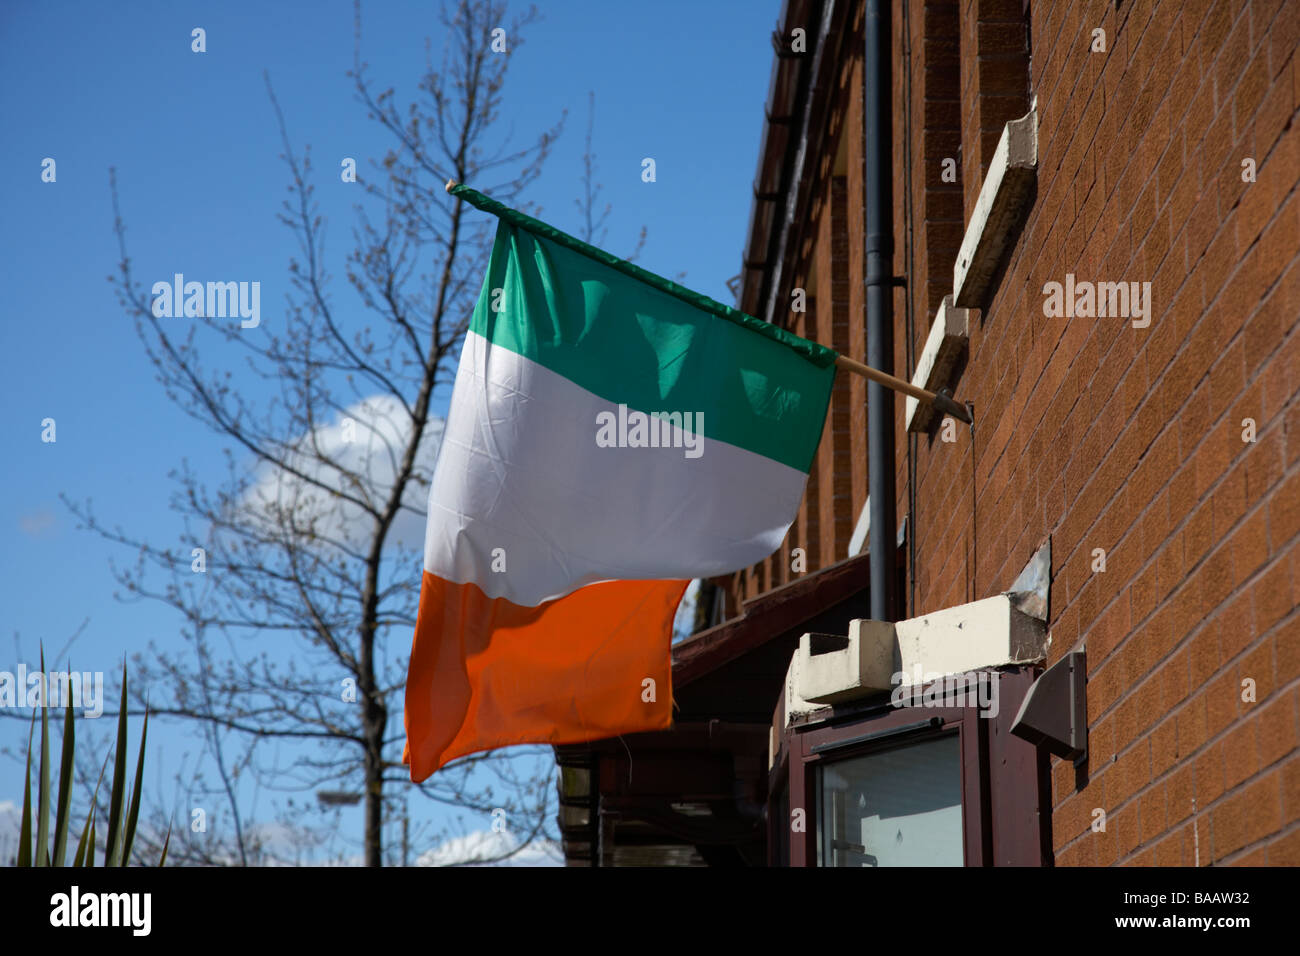 Irish tricolour green white and orange flag flying from a house in a republican area of belfast northern ireland - Stock Image